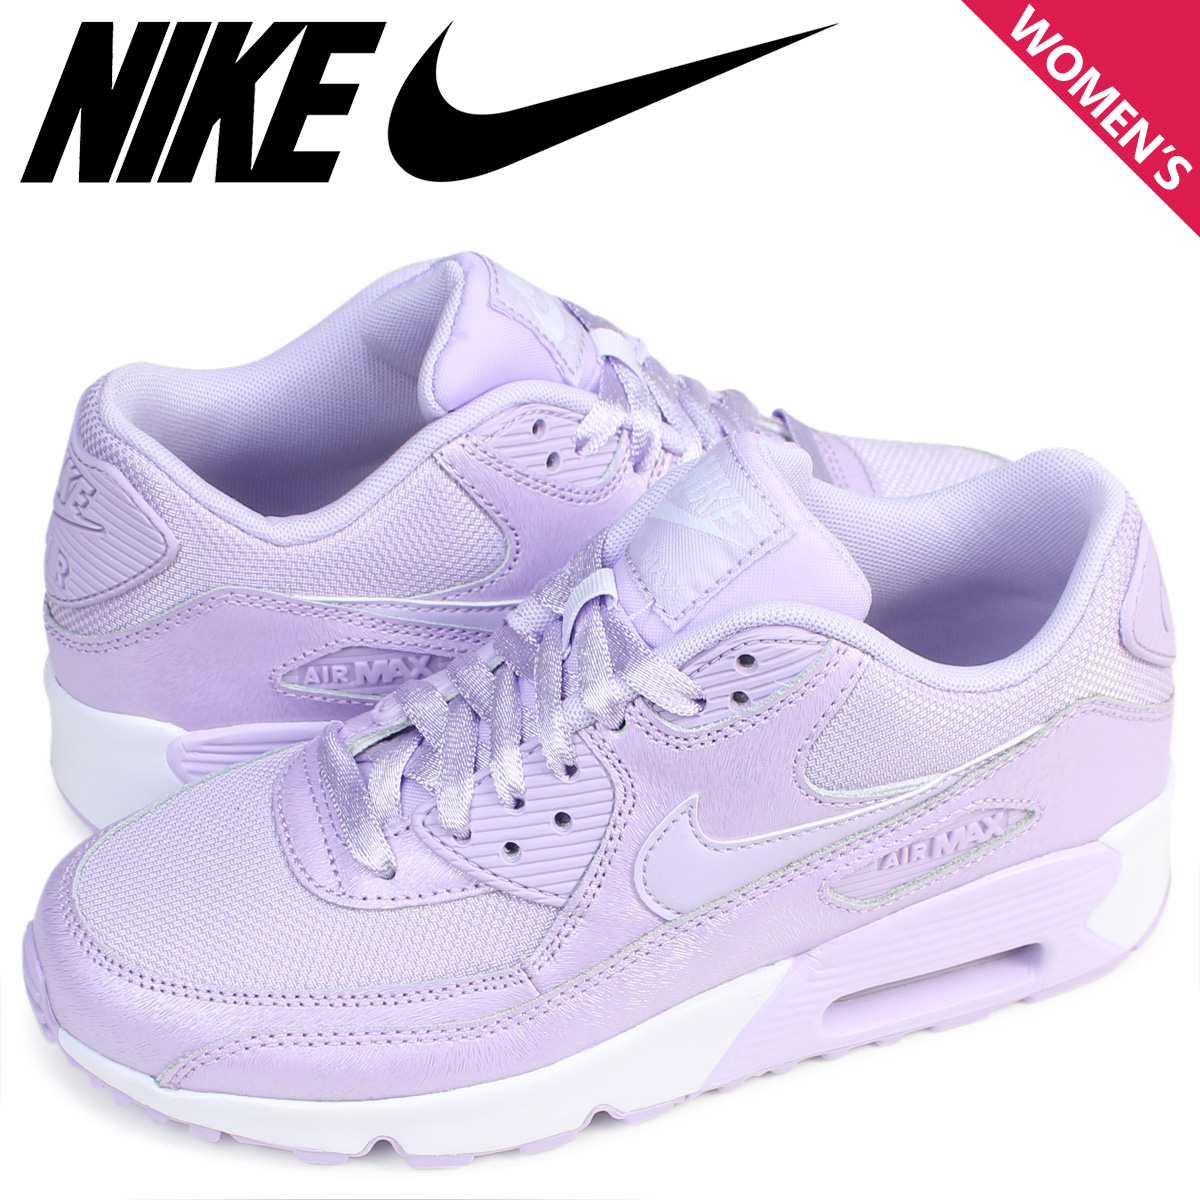 nike air max 90 ladies